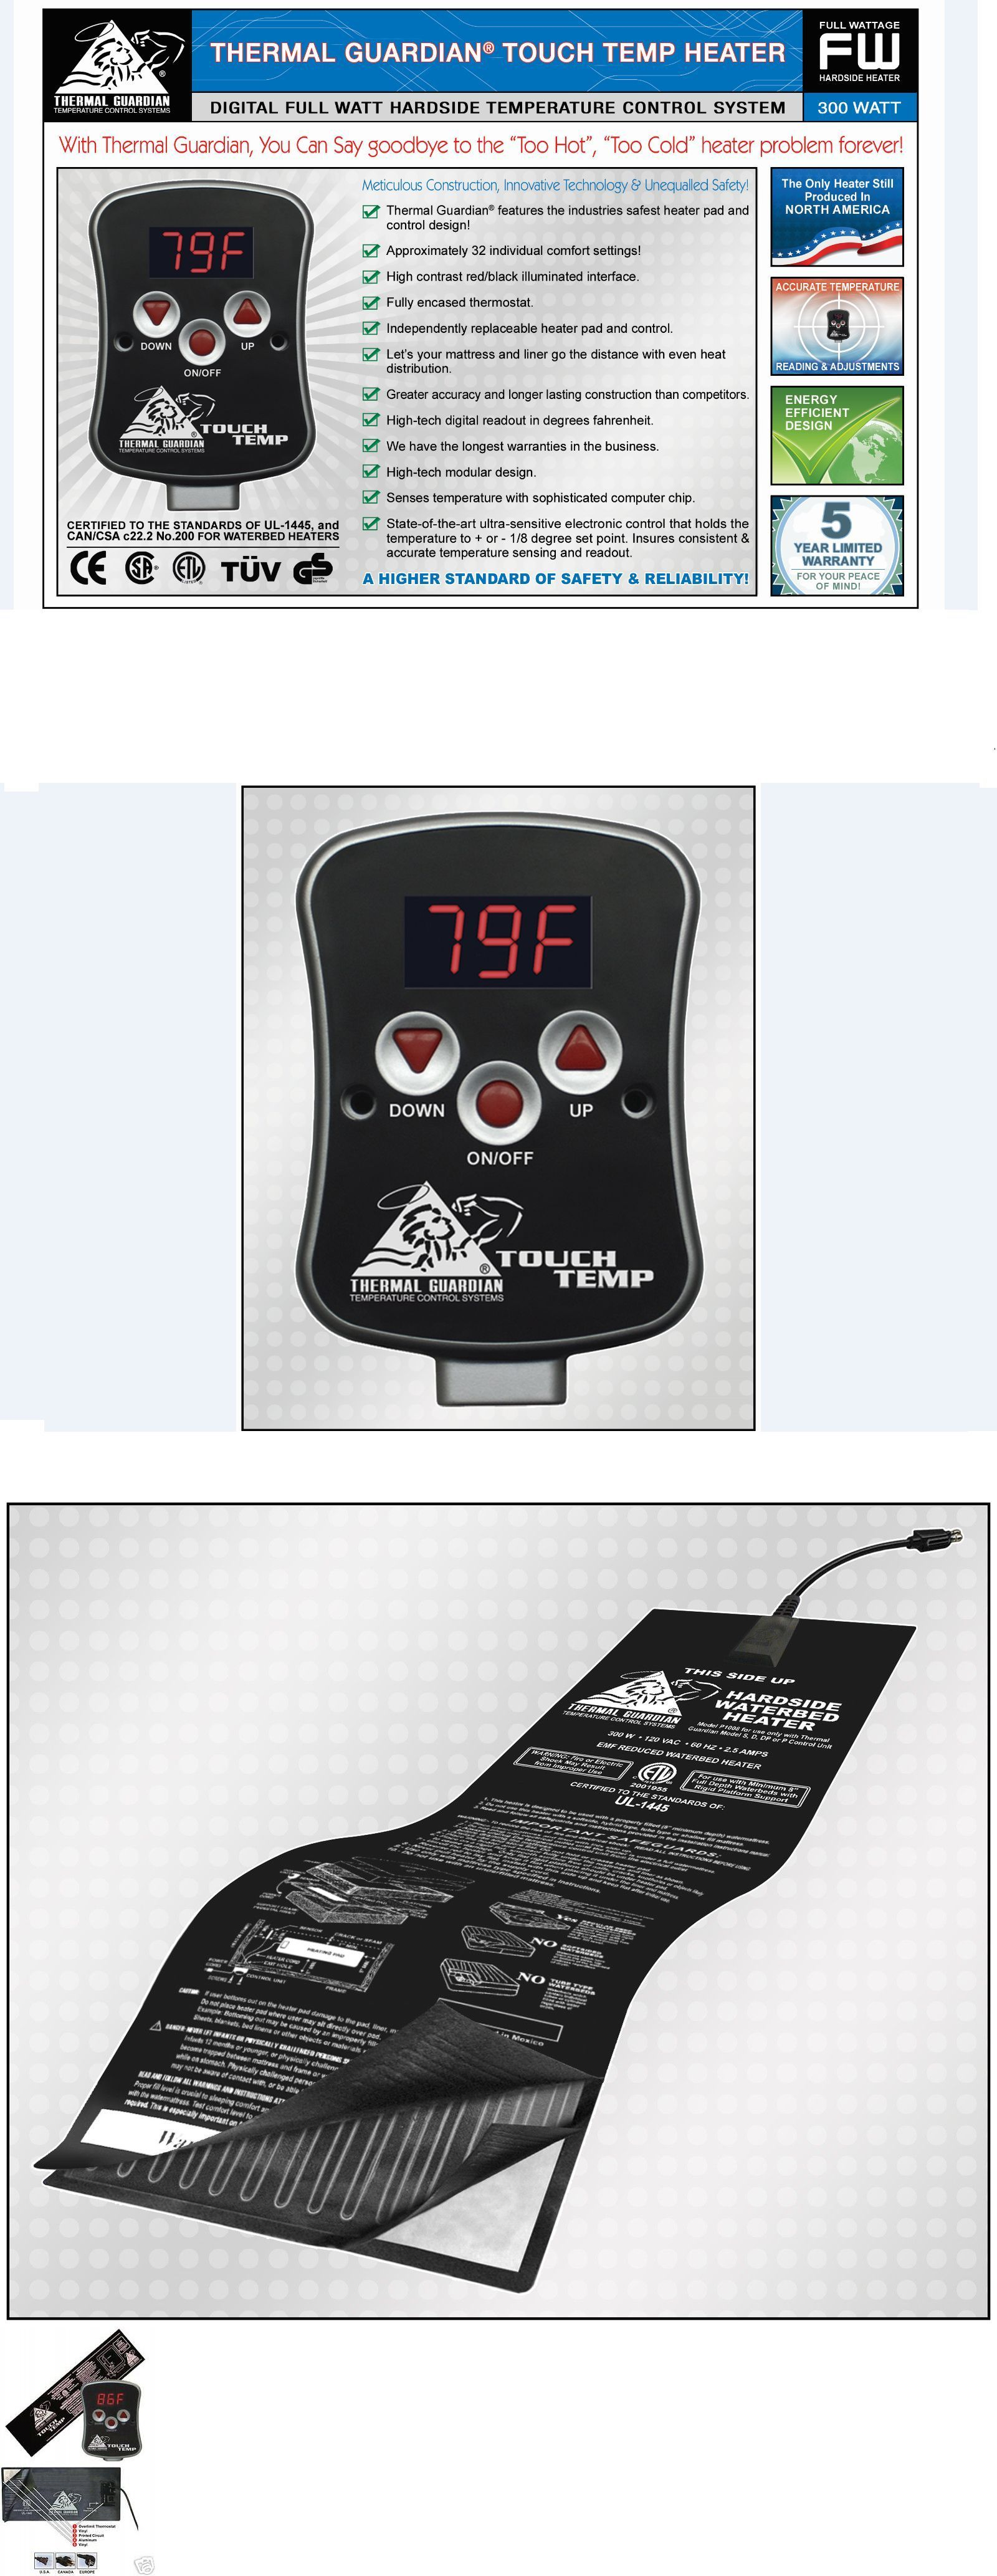 DIGITAL HARDSIDE WATERBED HEATER for KING Size FAST SHIPPING!